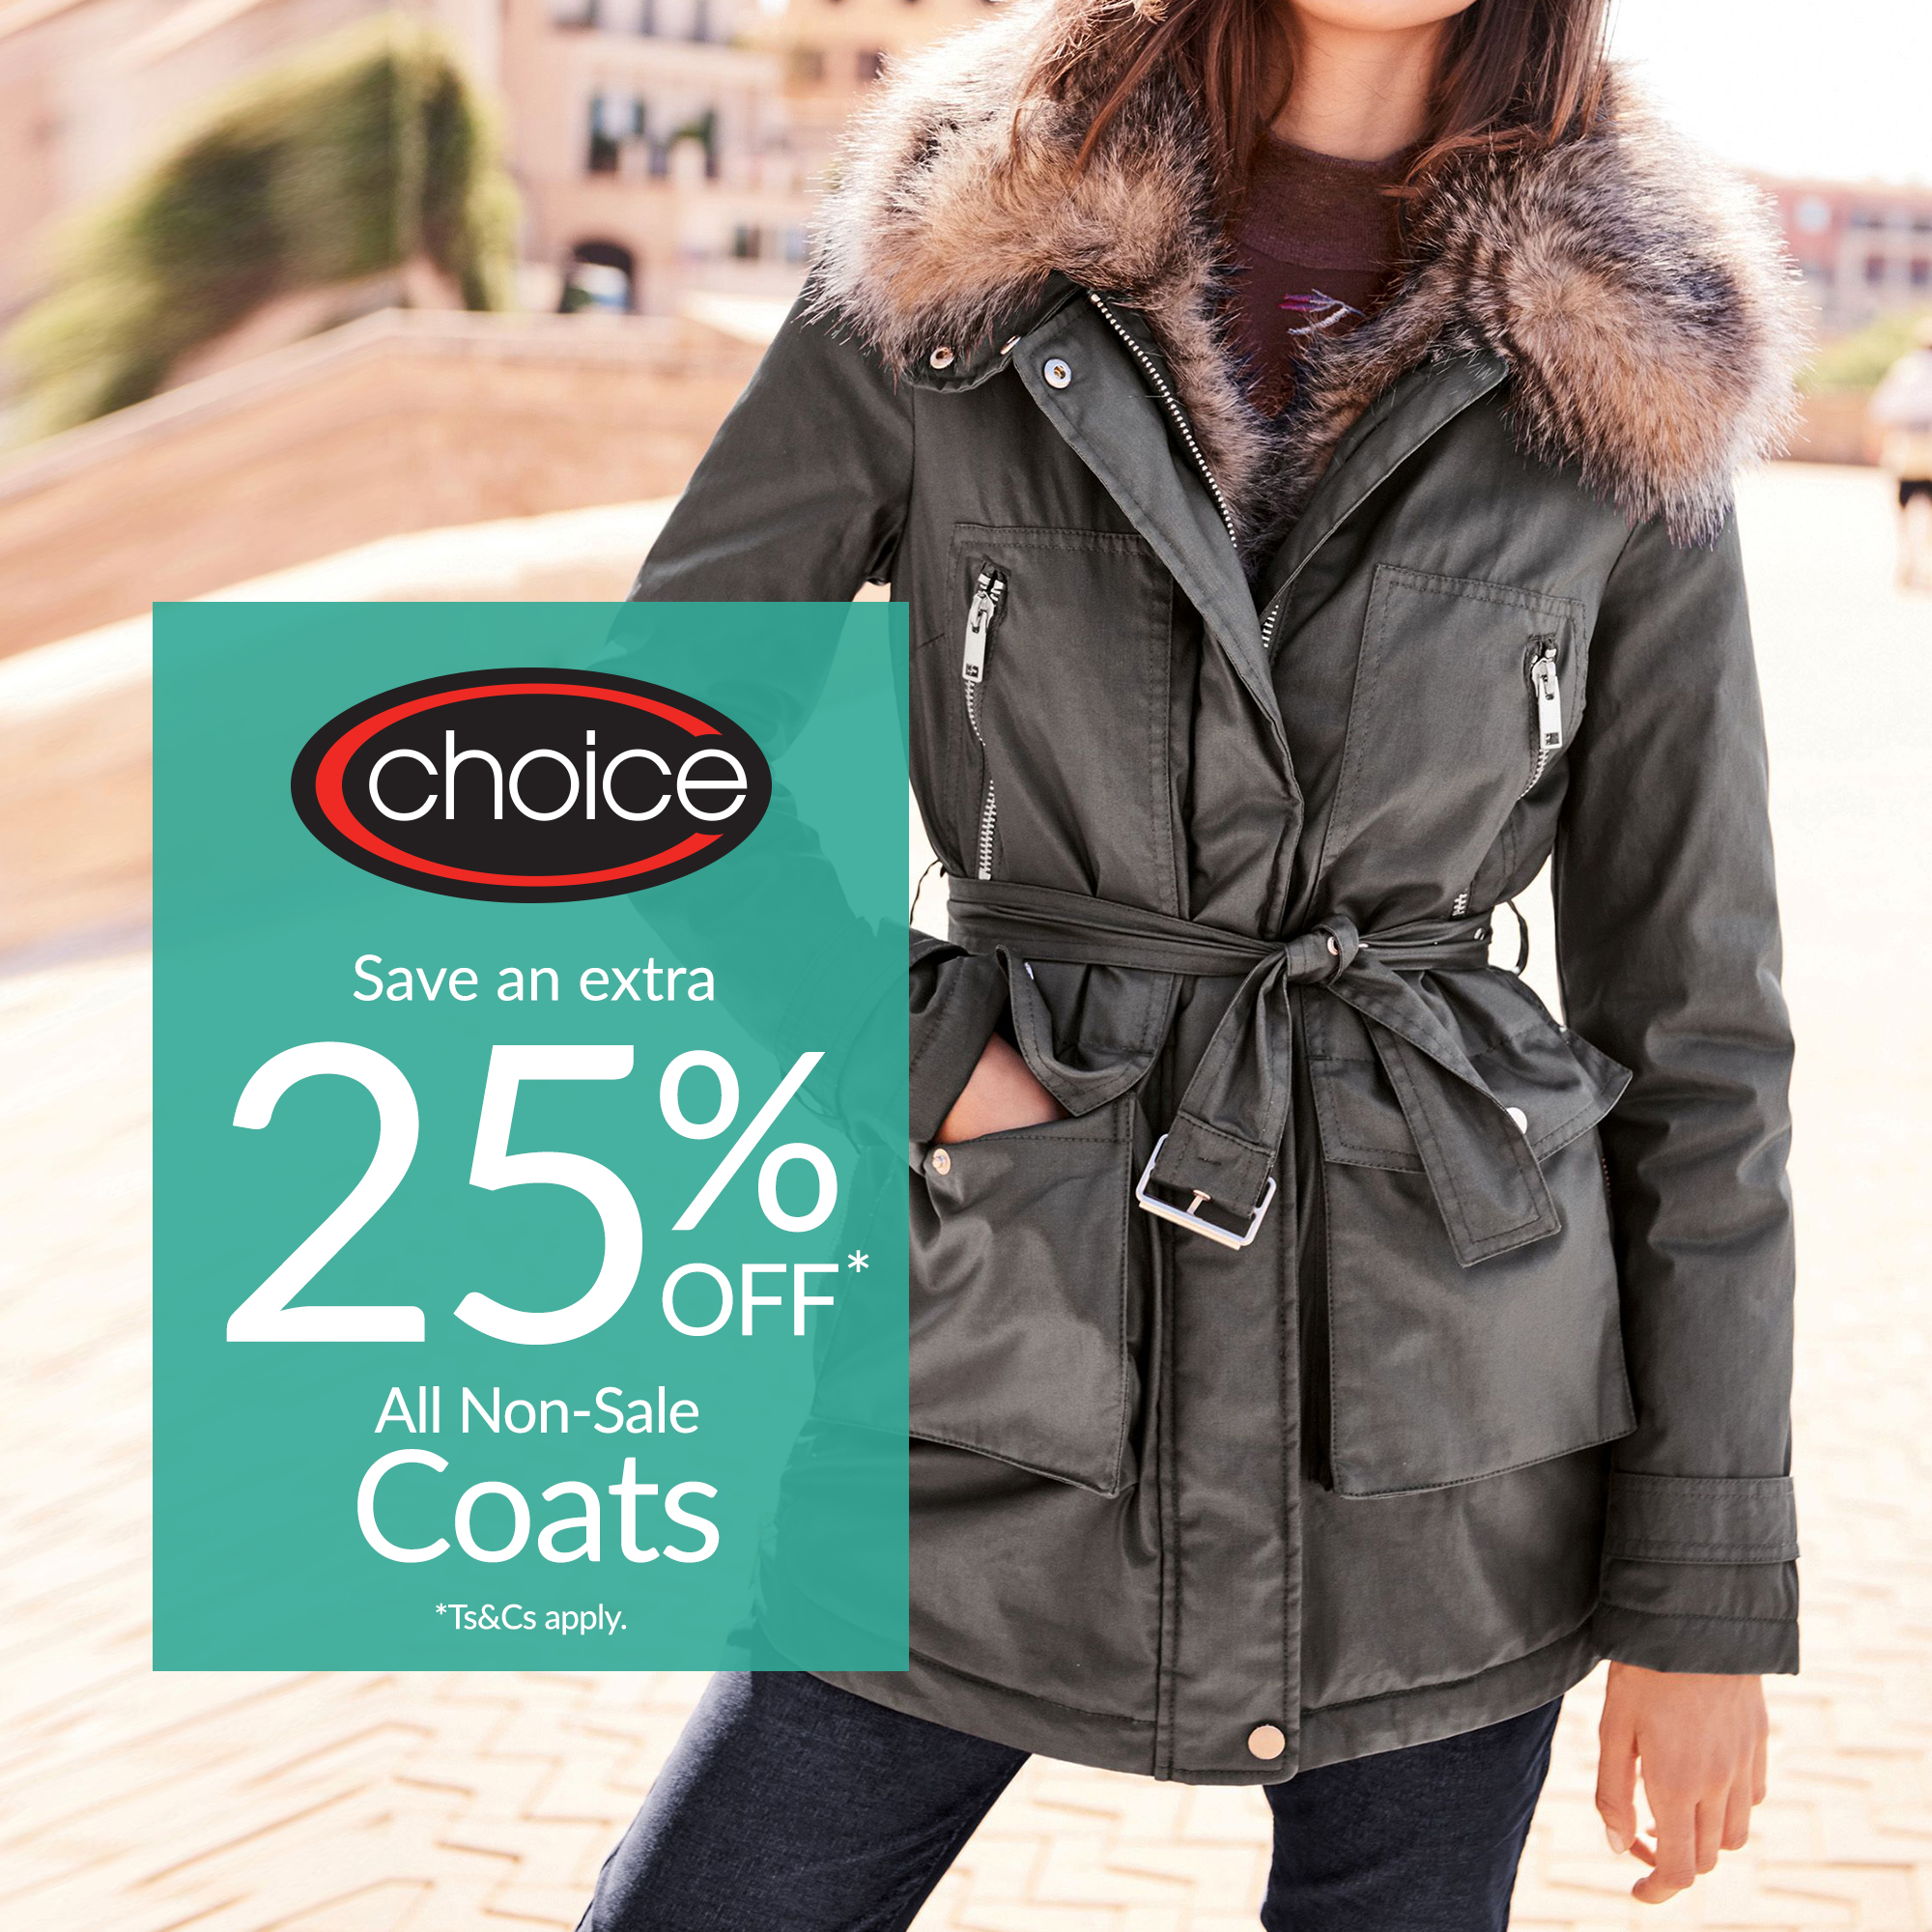 choice coat offer